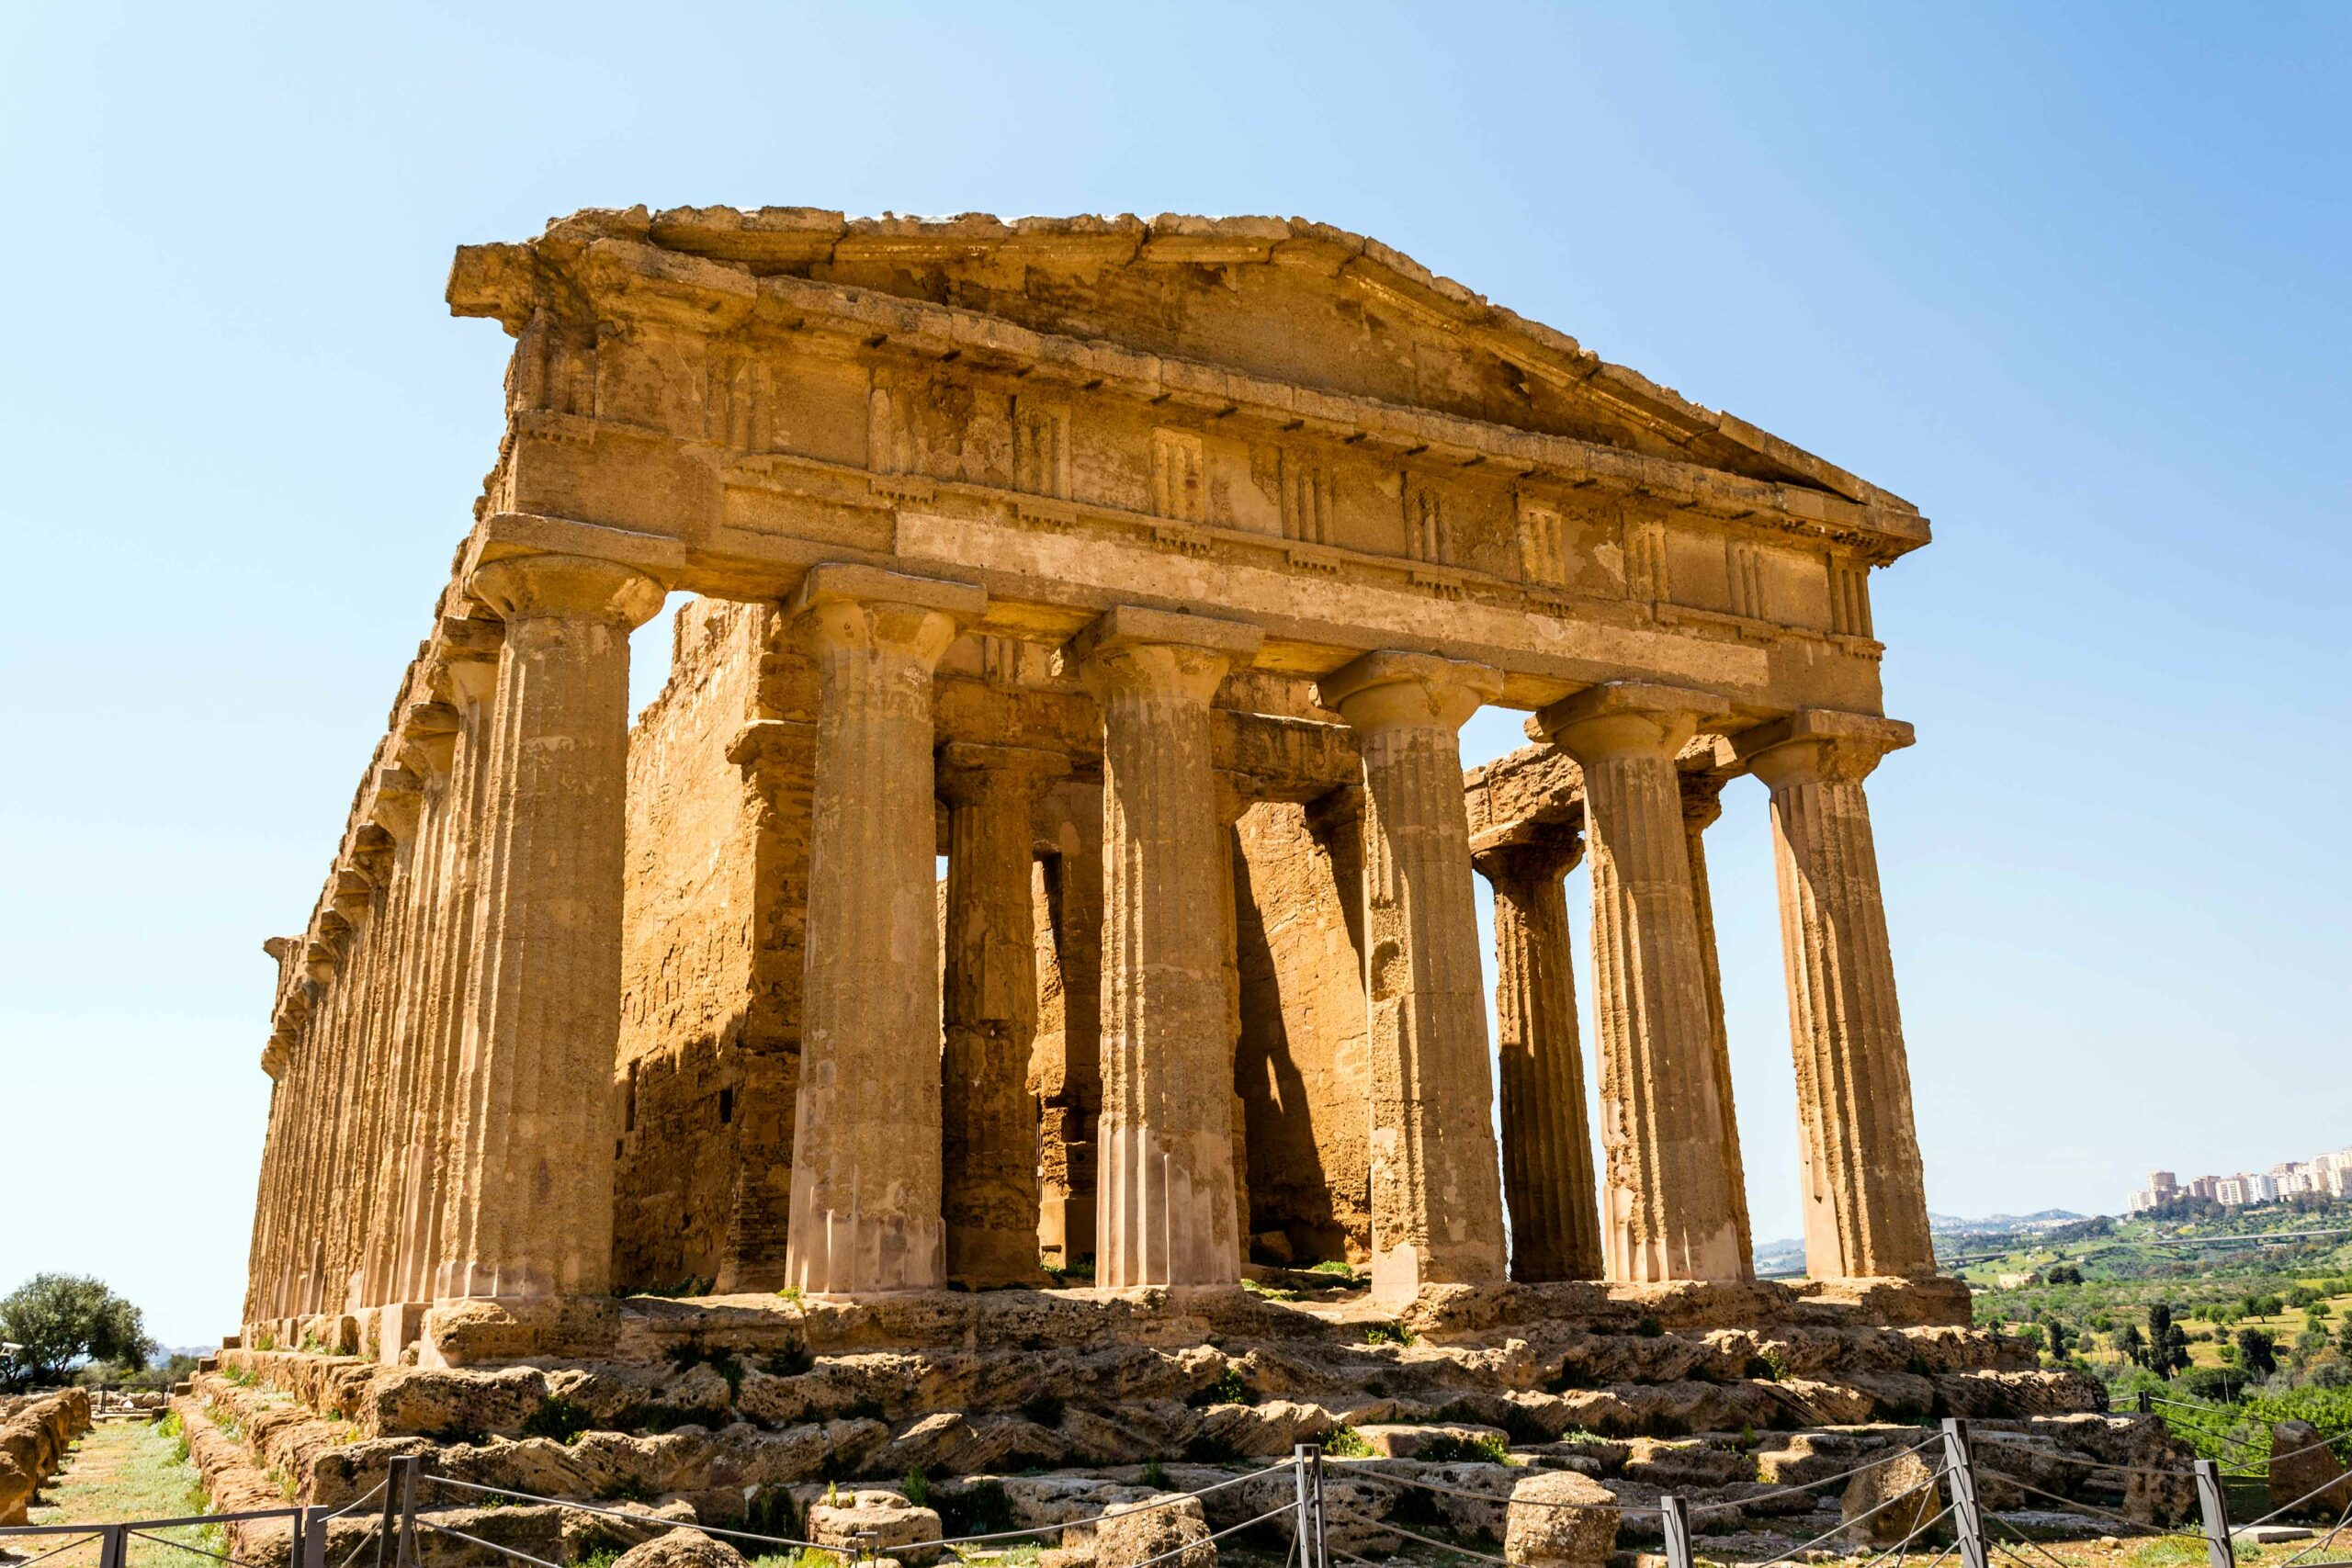 Canva---Concordia-Temple.-Valley-of-the-Temples,-Agrigento-on-Sicily,-Italy